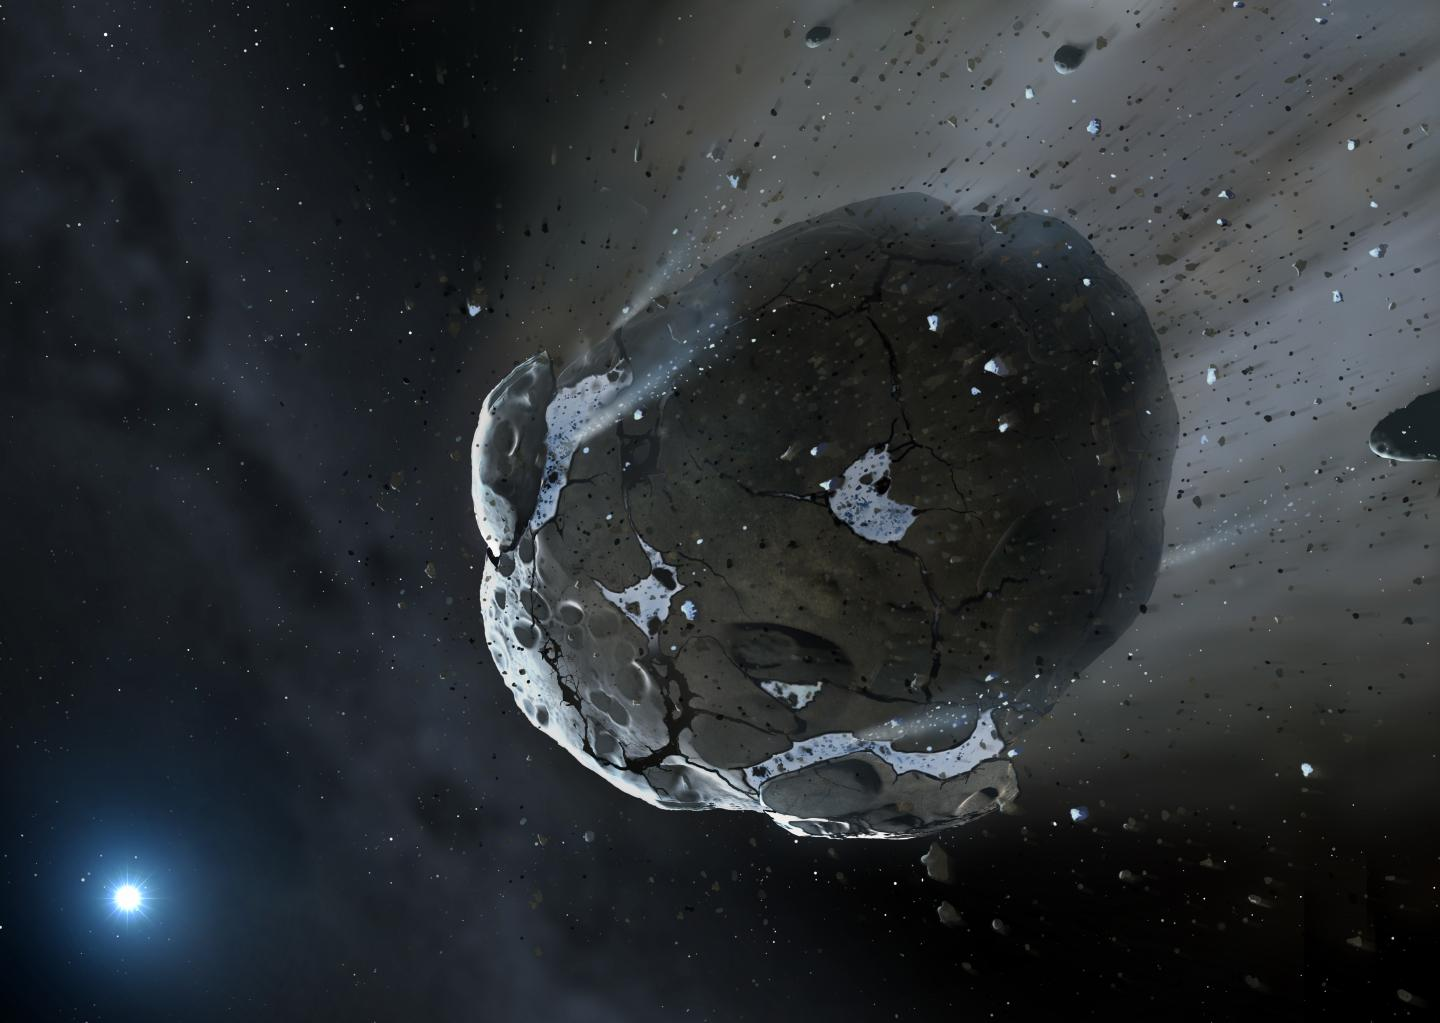 Artist's Impression of a Rocky and Water-Rich Asteroid Being Torn Apart by Strong Gravity